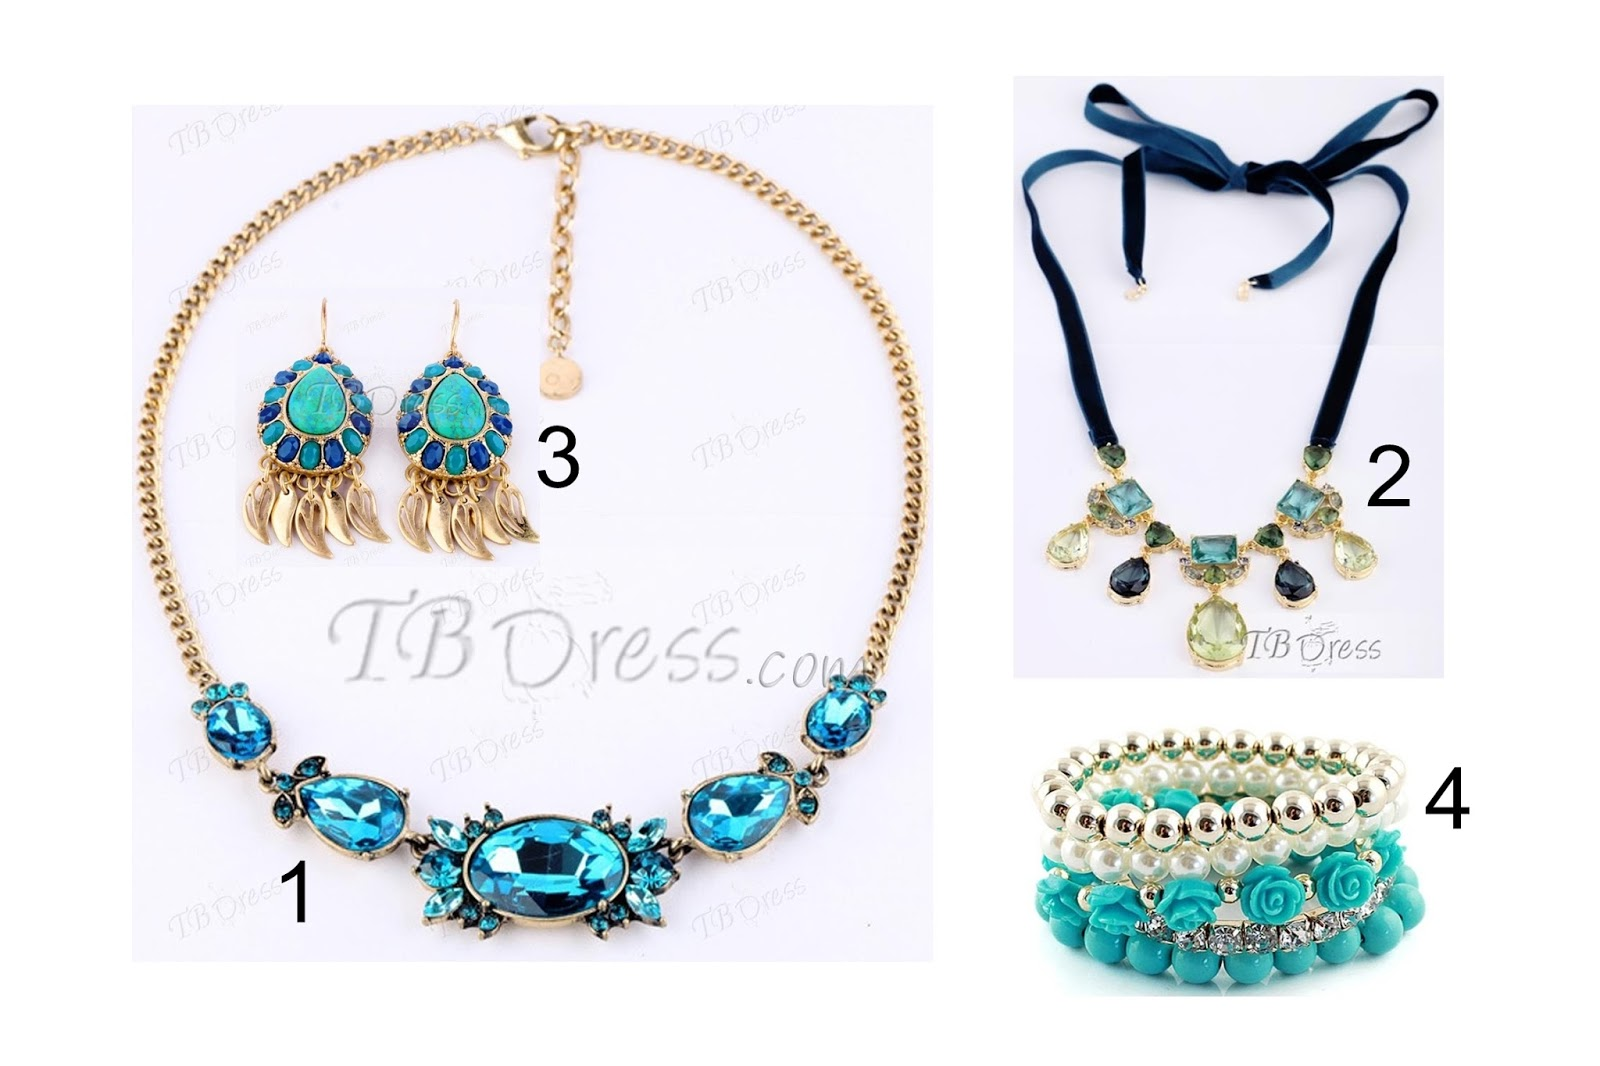 http://www.tbdress.com/Topic/Thanksgiving-Day-Jewelry-Deals-17-100543/